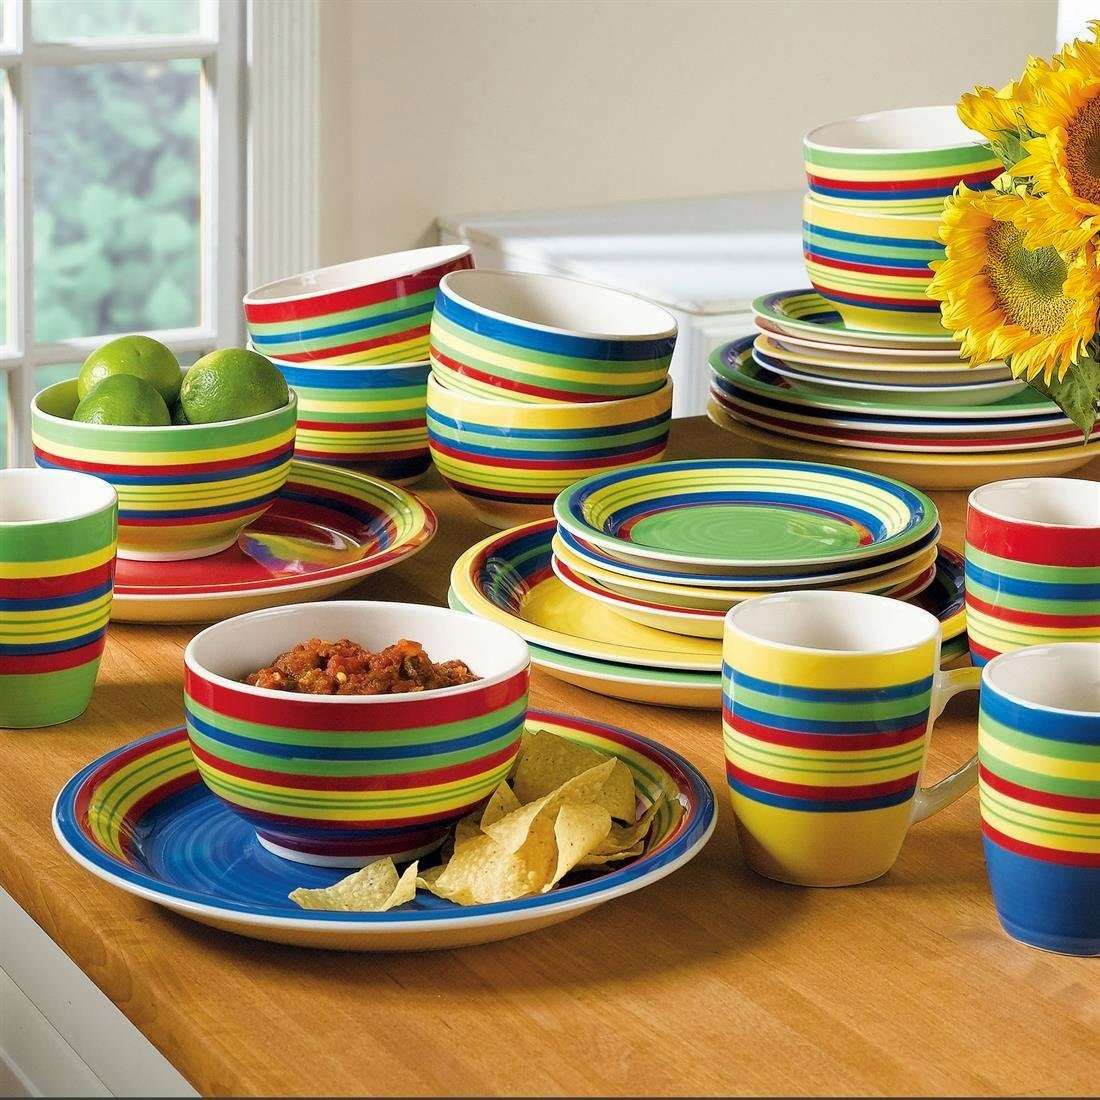 Brylanehome Santa Fe Hand-Painted Striped Stoneware Dinnerware & Mikasa French Countryside 45-Piece Dinnerware Set Service for 8 ...